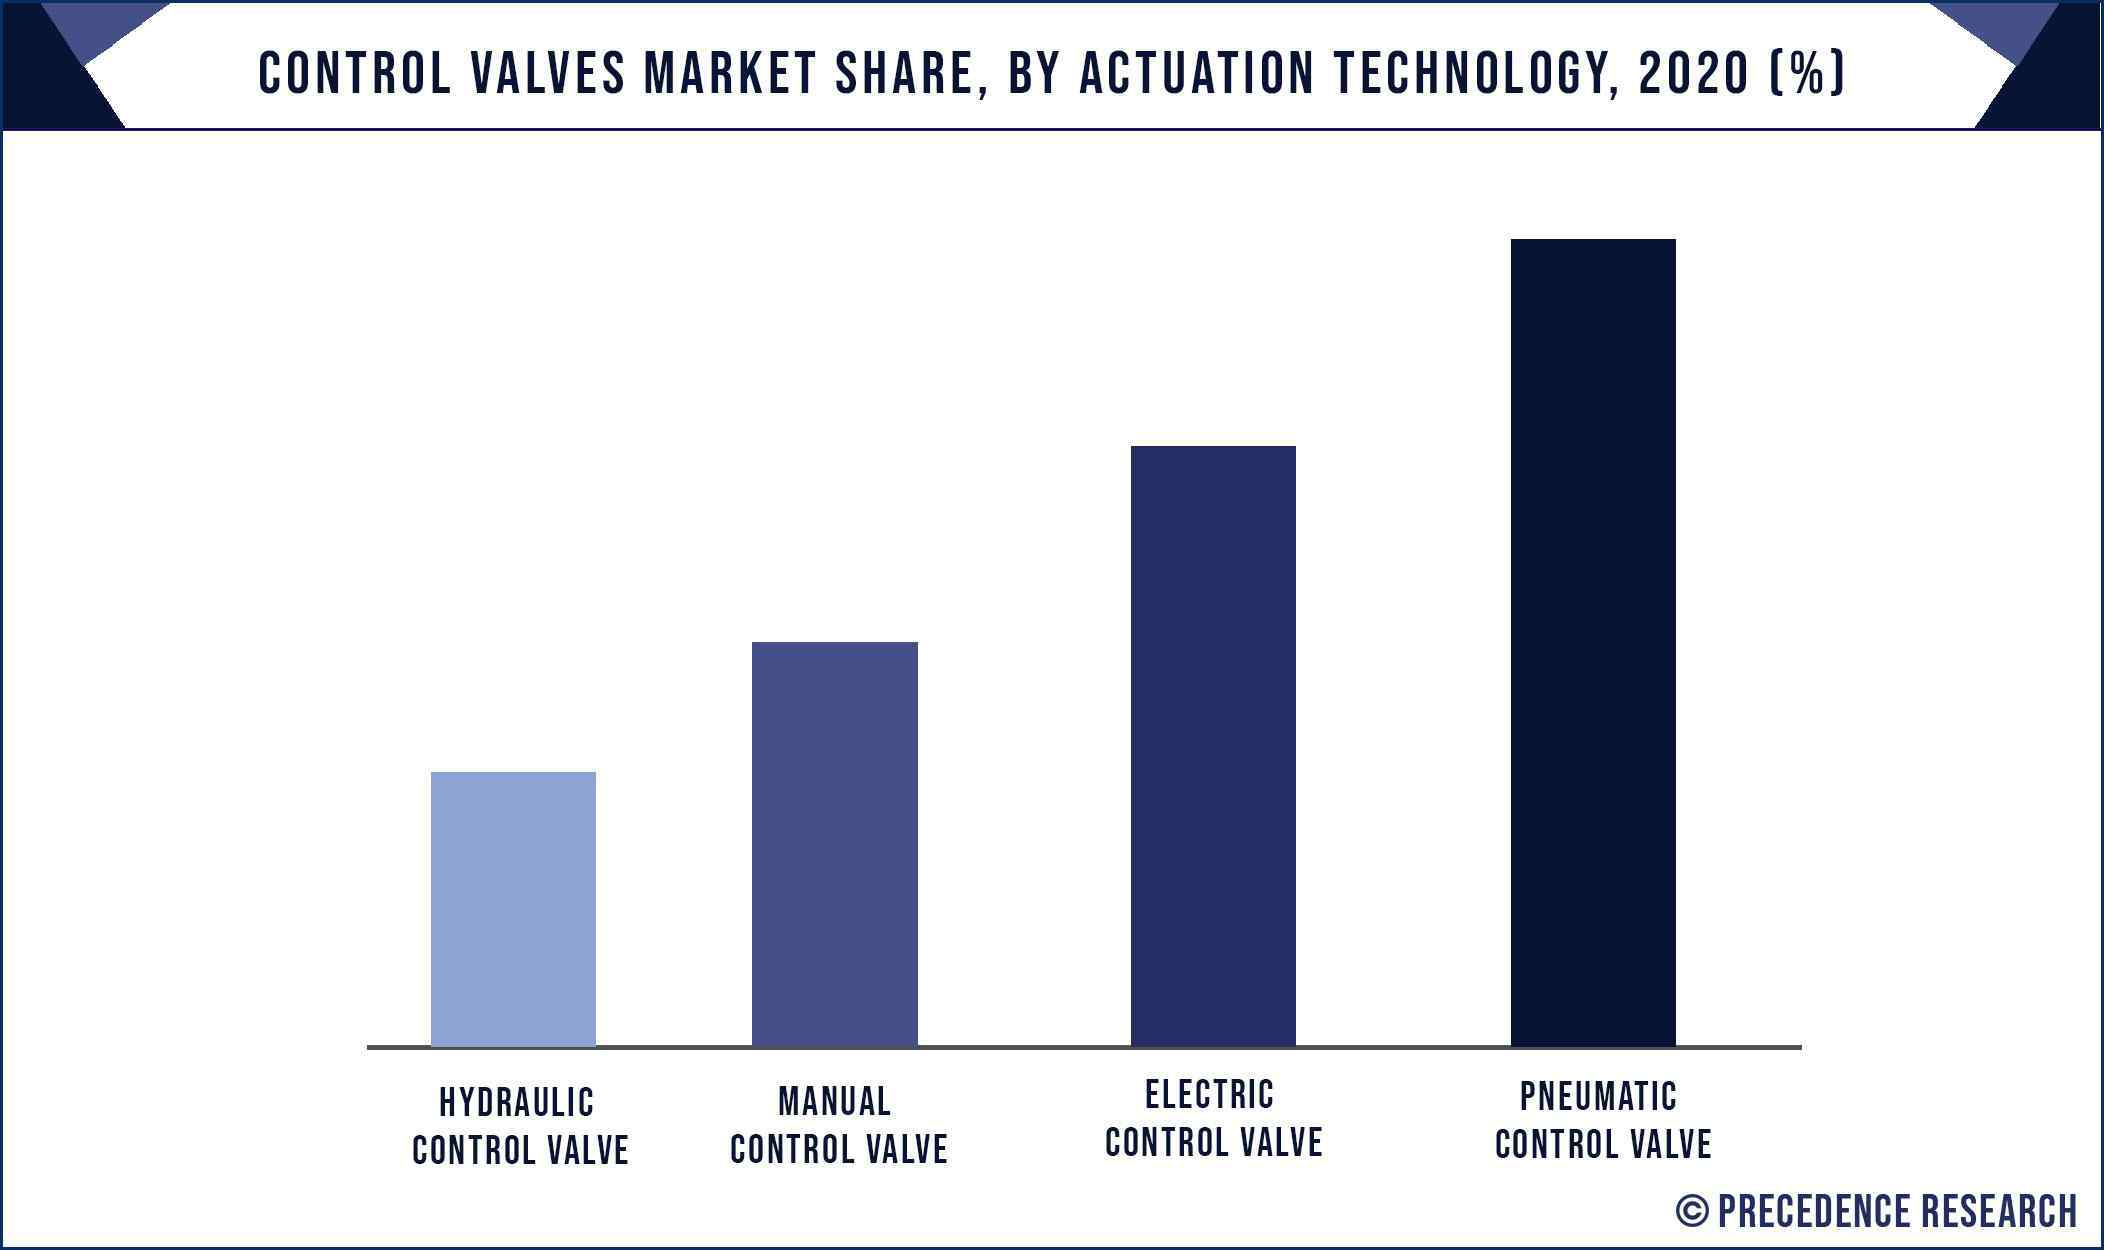 Control Valves Market Share, By Actuation Technology, 2020 (%)